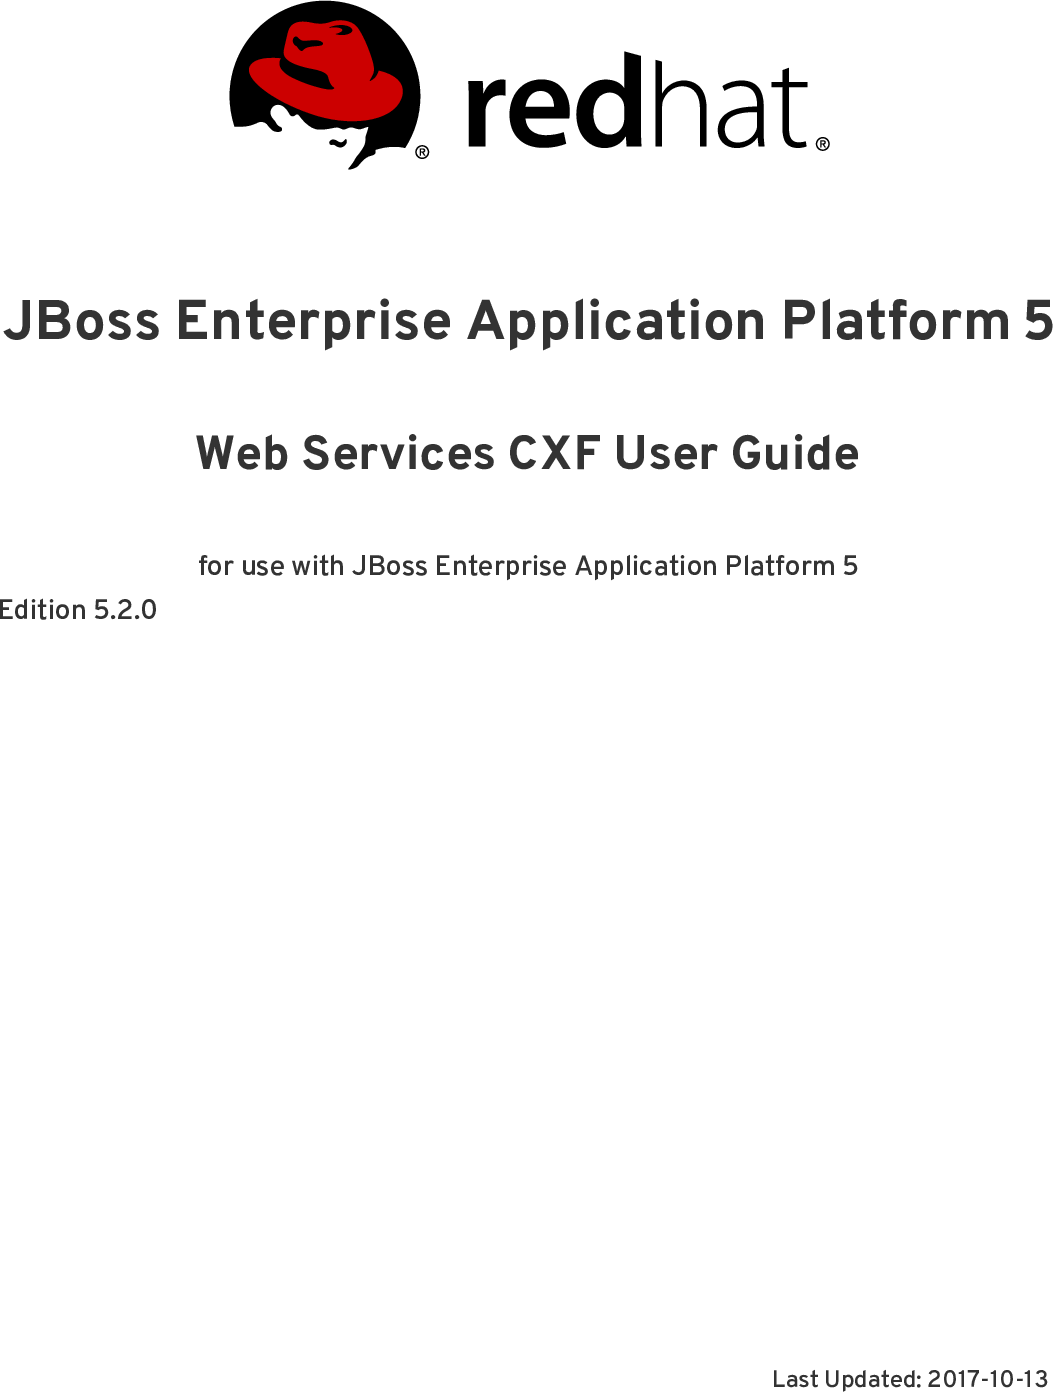 Web Services CXF User Guide Red Hat